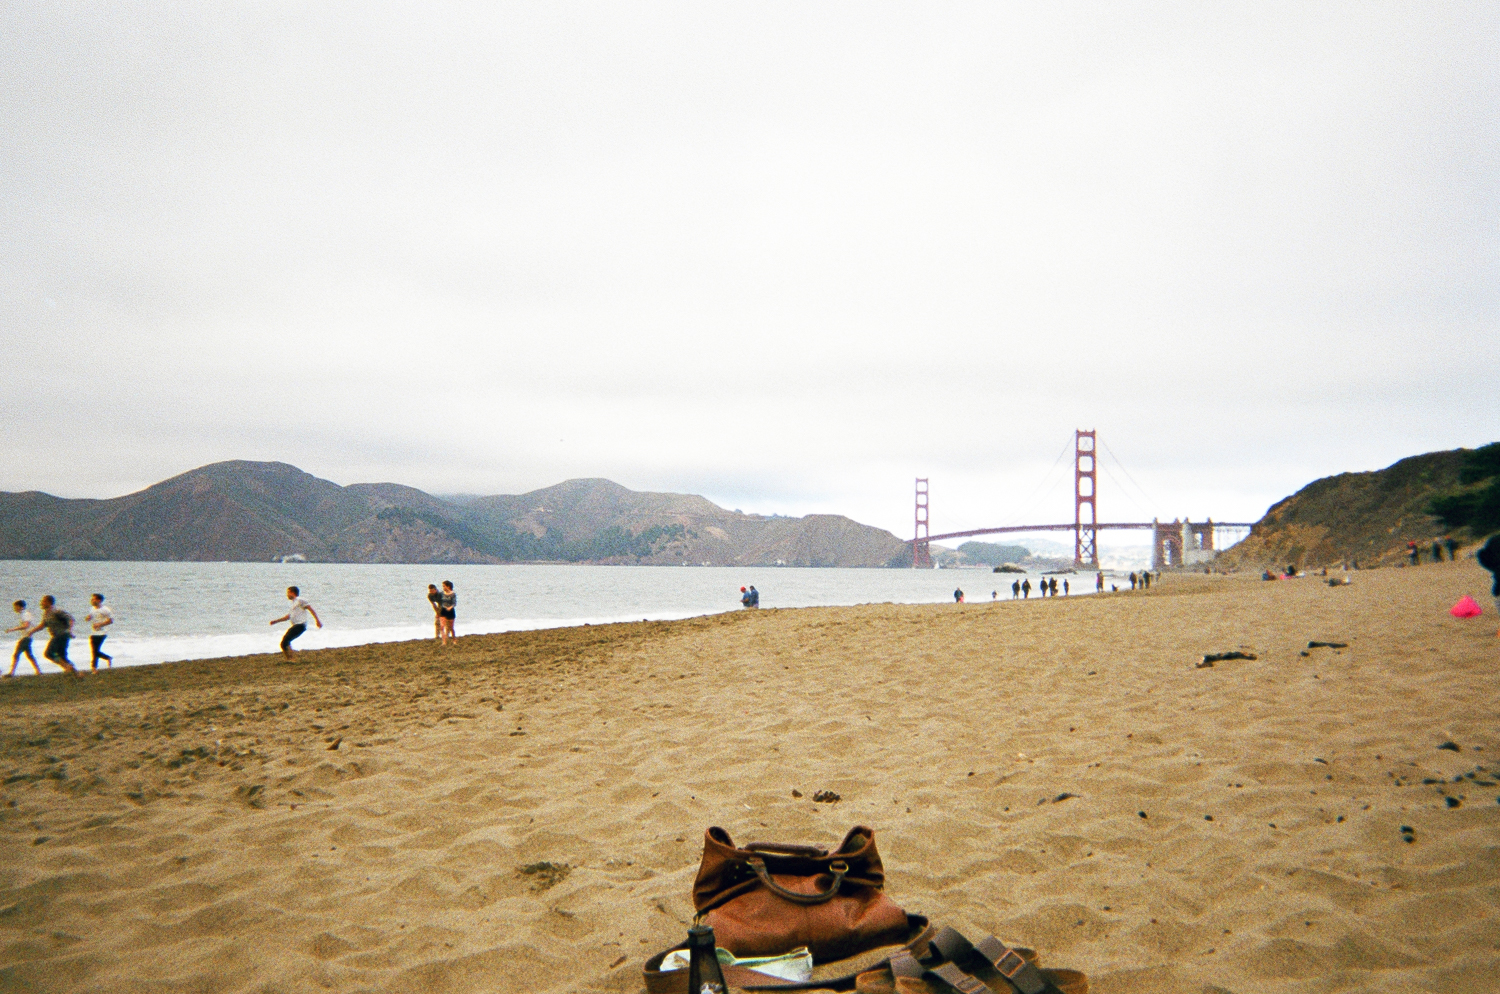 28.12.2014  More old dispos developed.  Baker Beach, San Francisco in September.